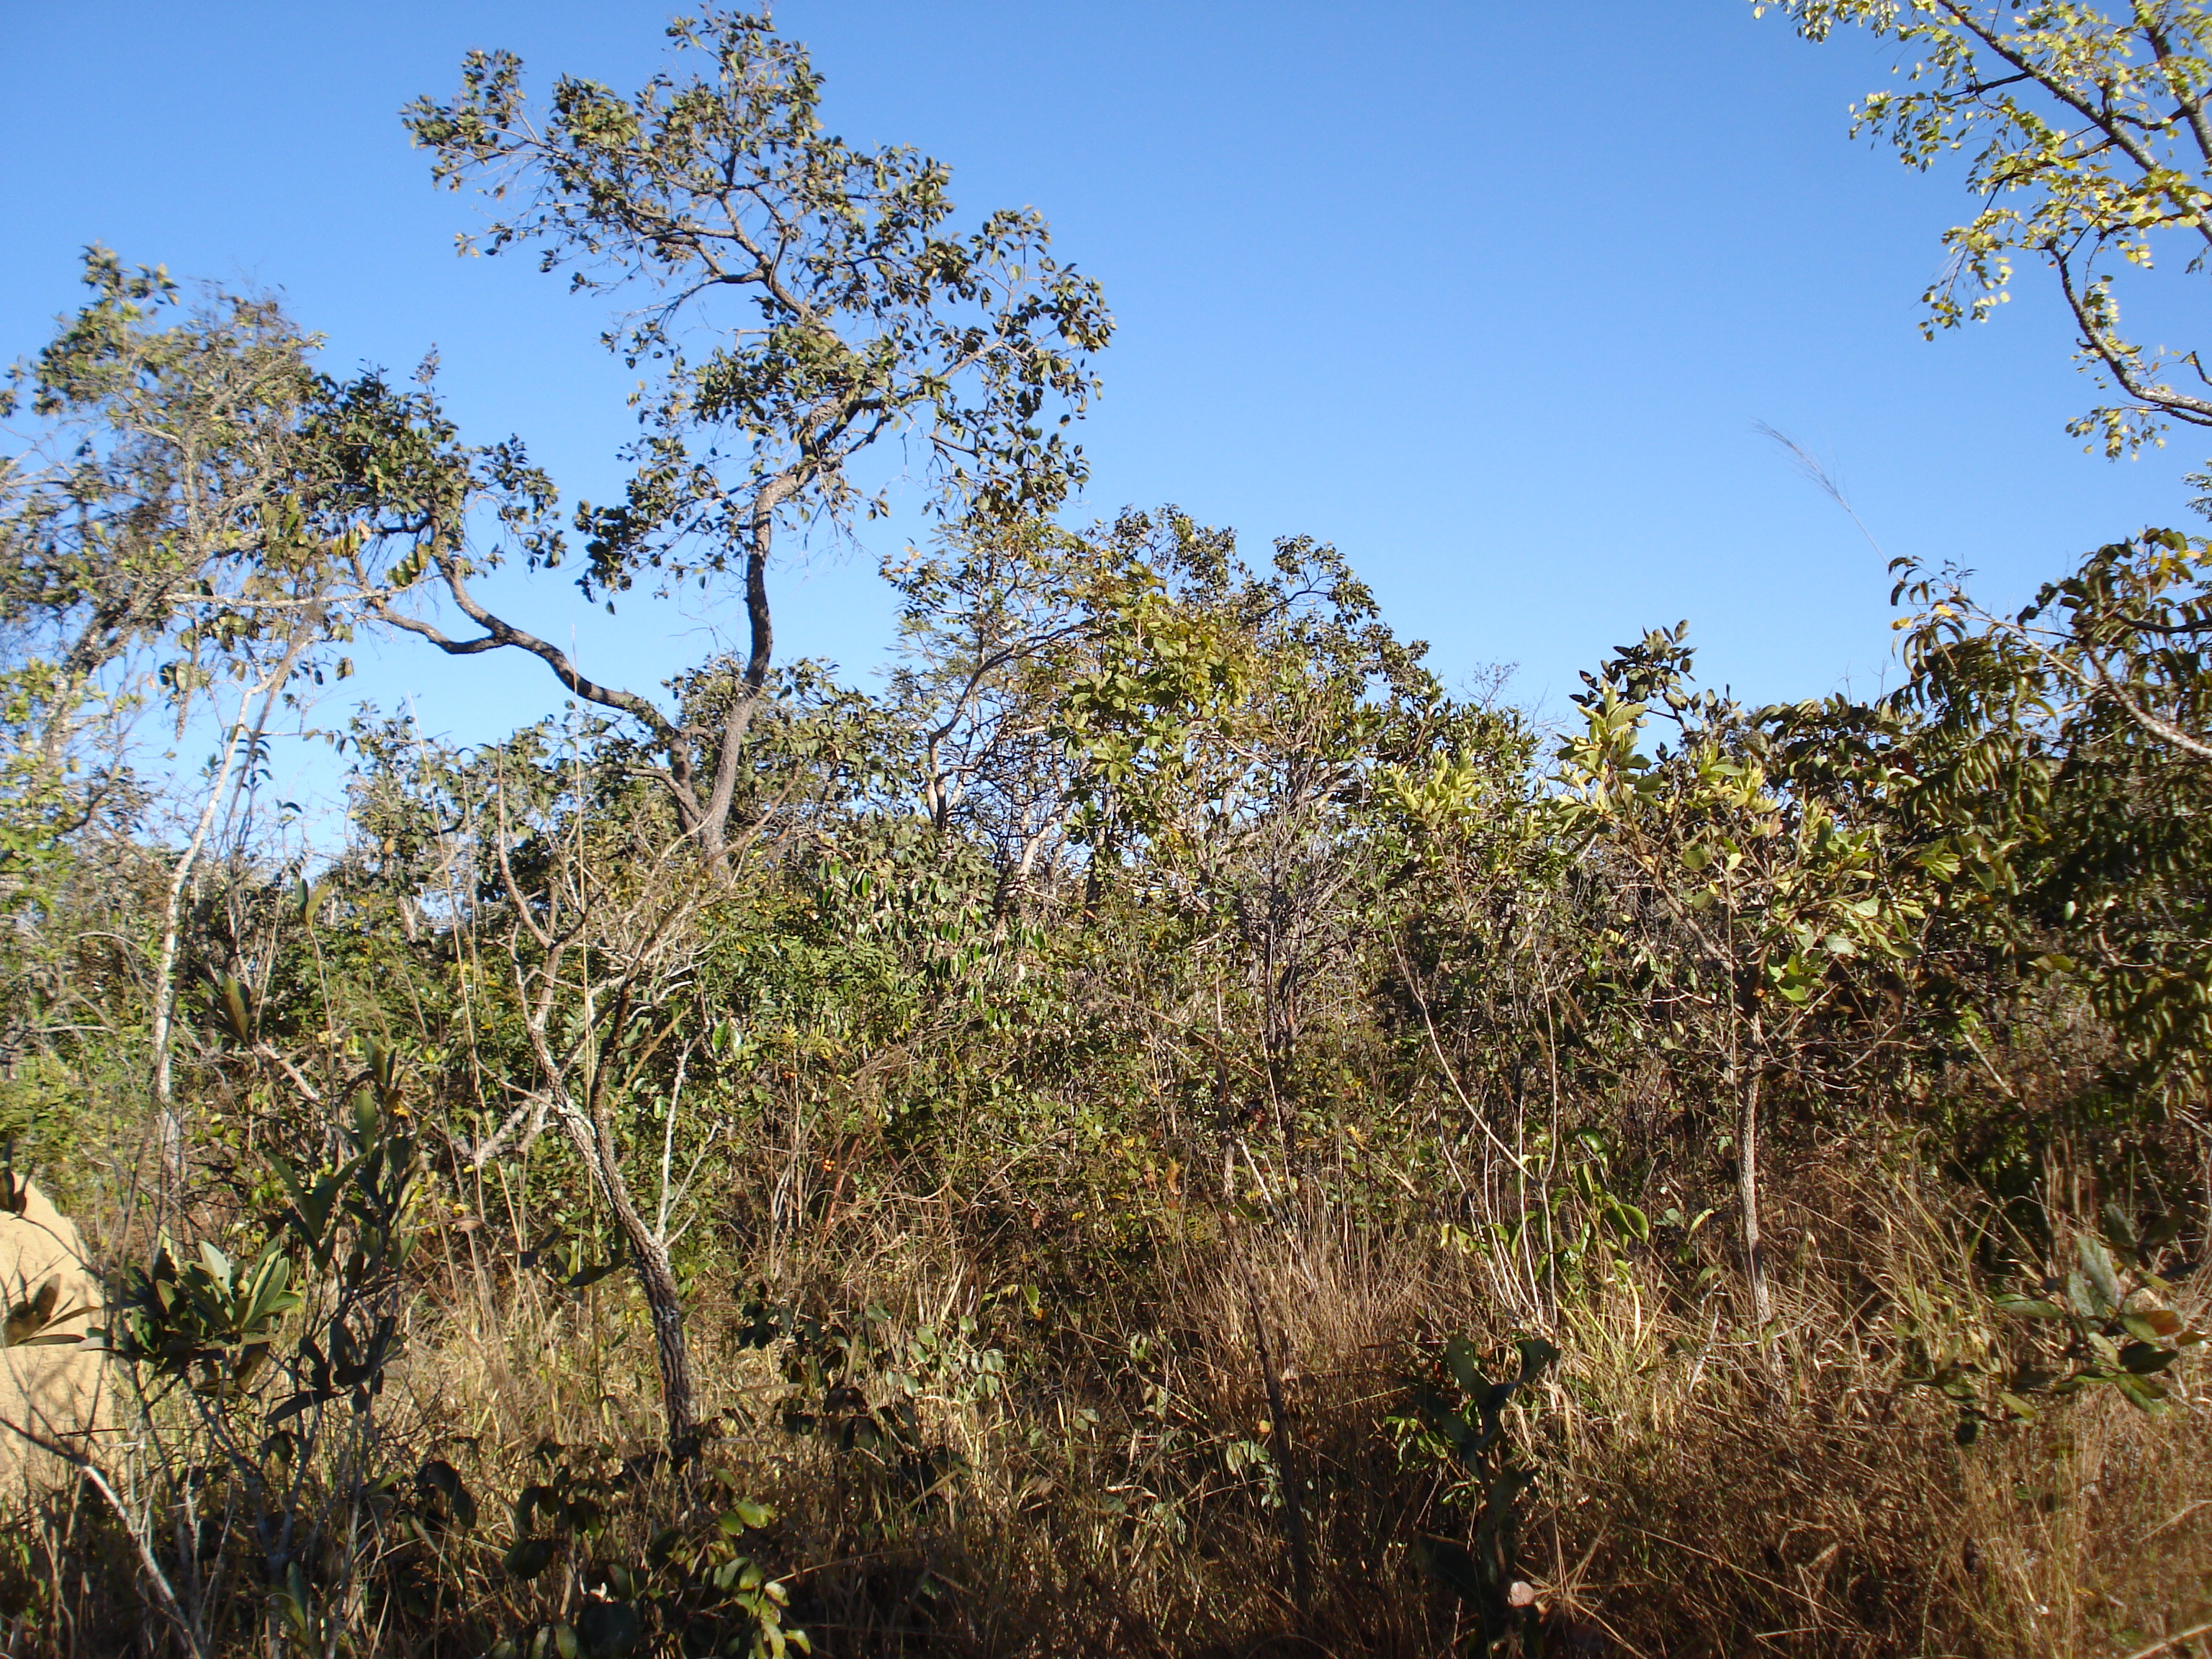 Photo 4: A view of the typical savanna type vegetation in the Cerrado, where both plants and hummingbirds seem to be the least specialized (credit P.K. Maruyama)